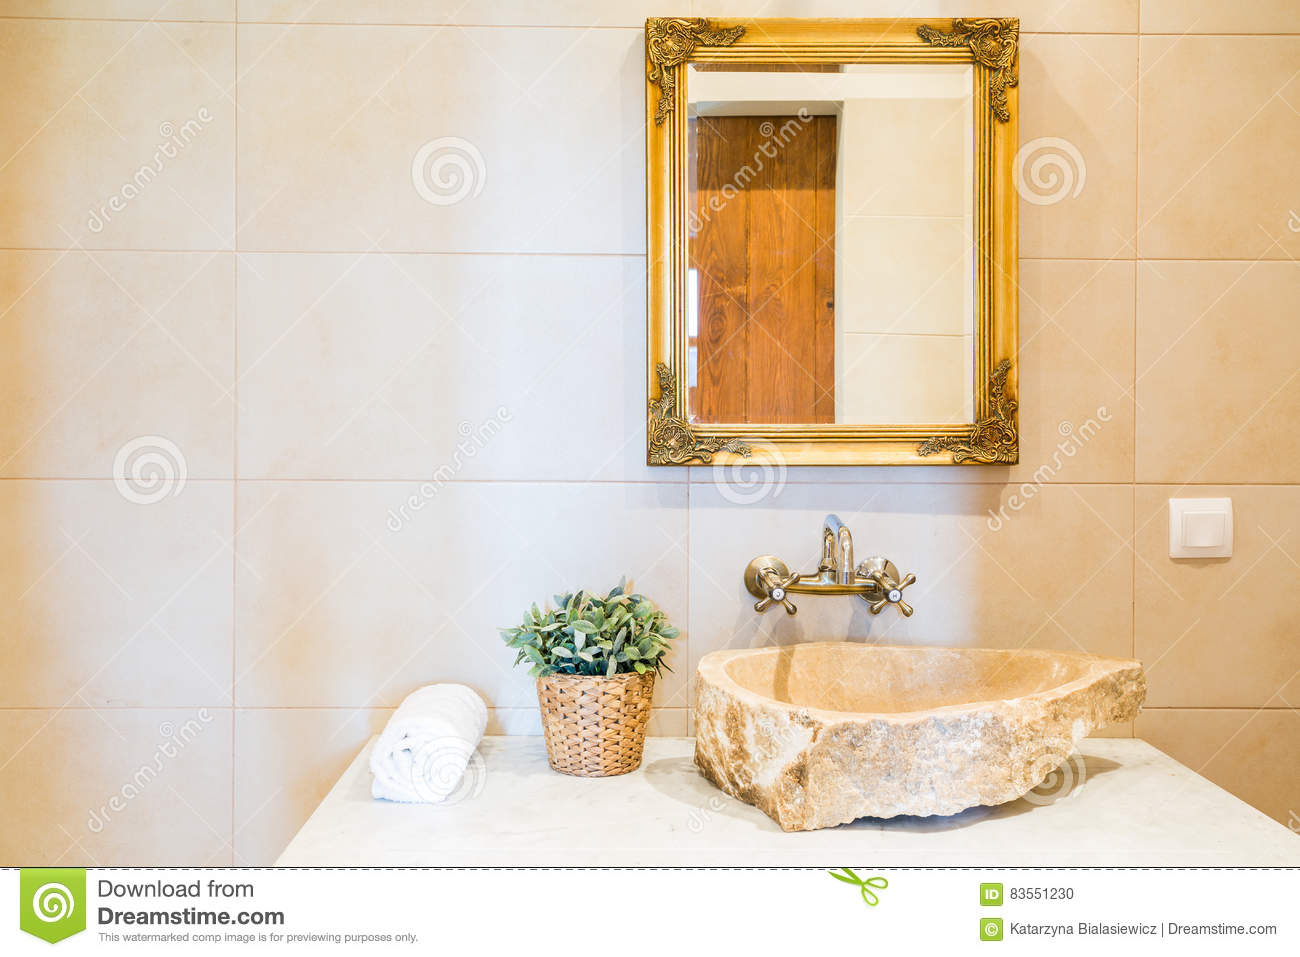 Stone Sink And Mirror In Bathroom Stock Photo Image Of Creative Decoration 83551230